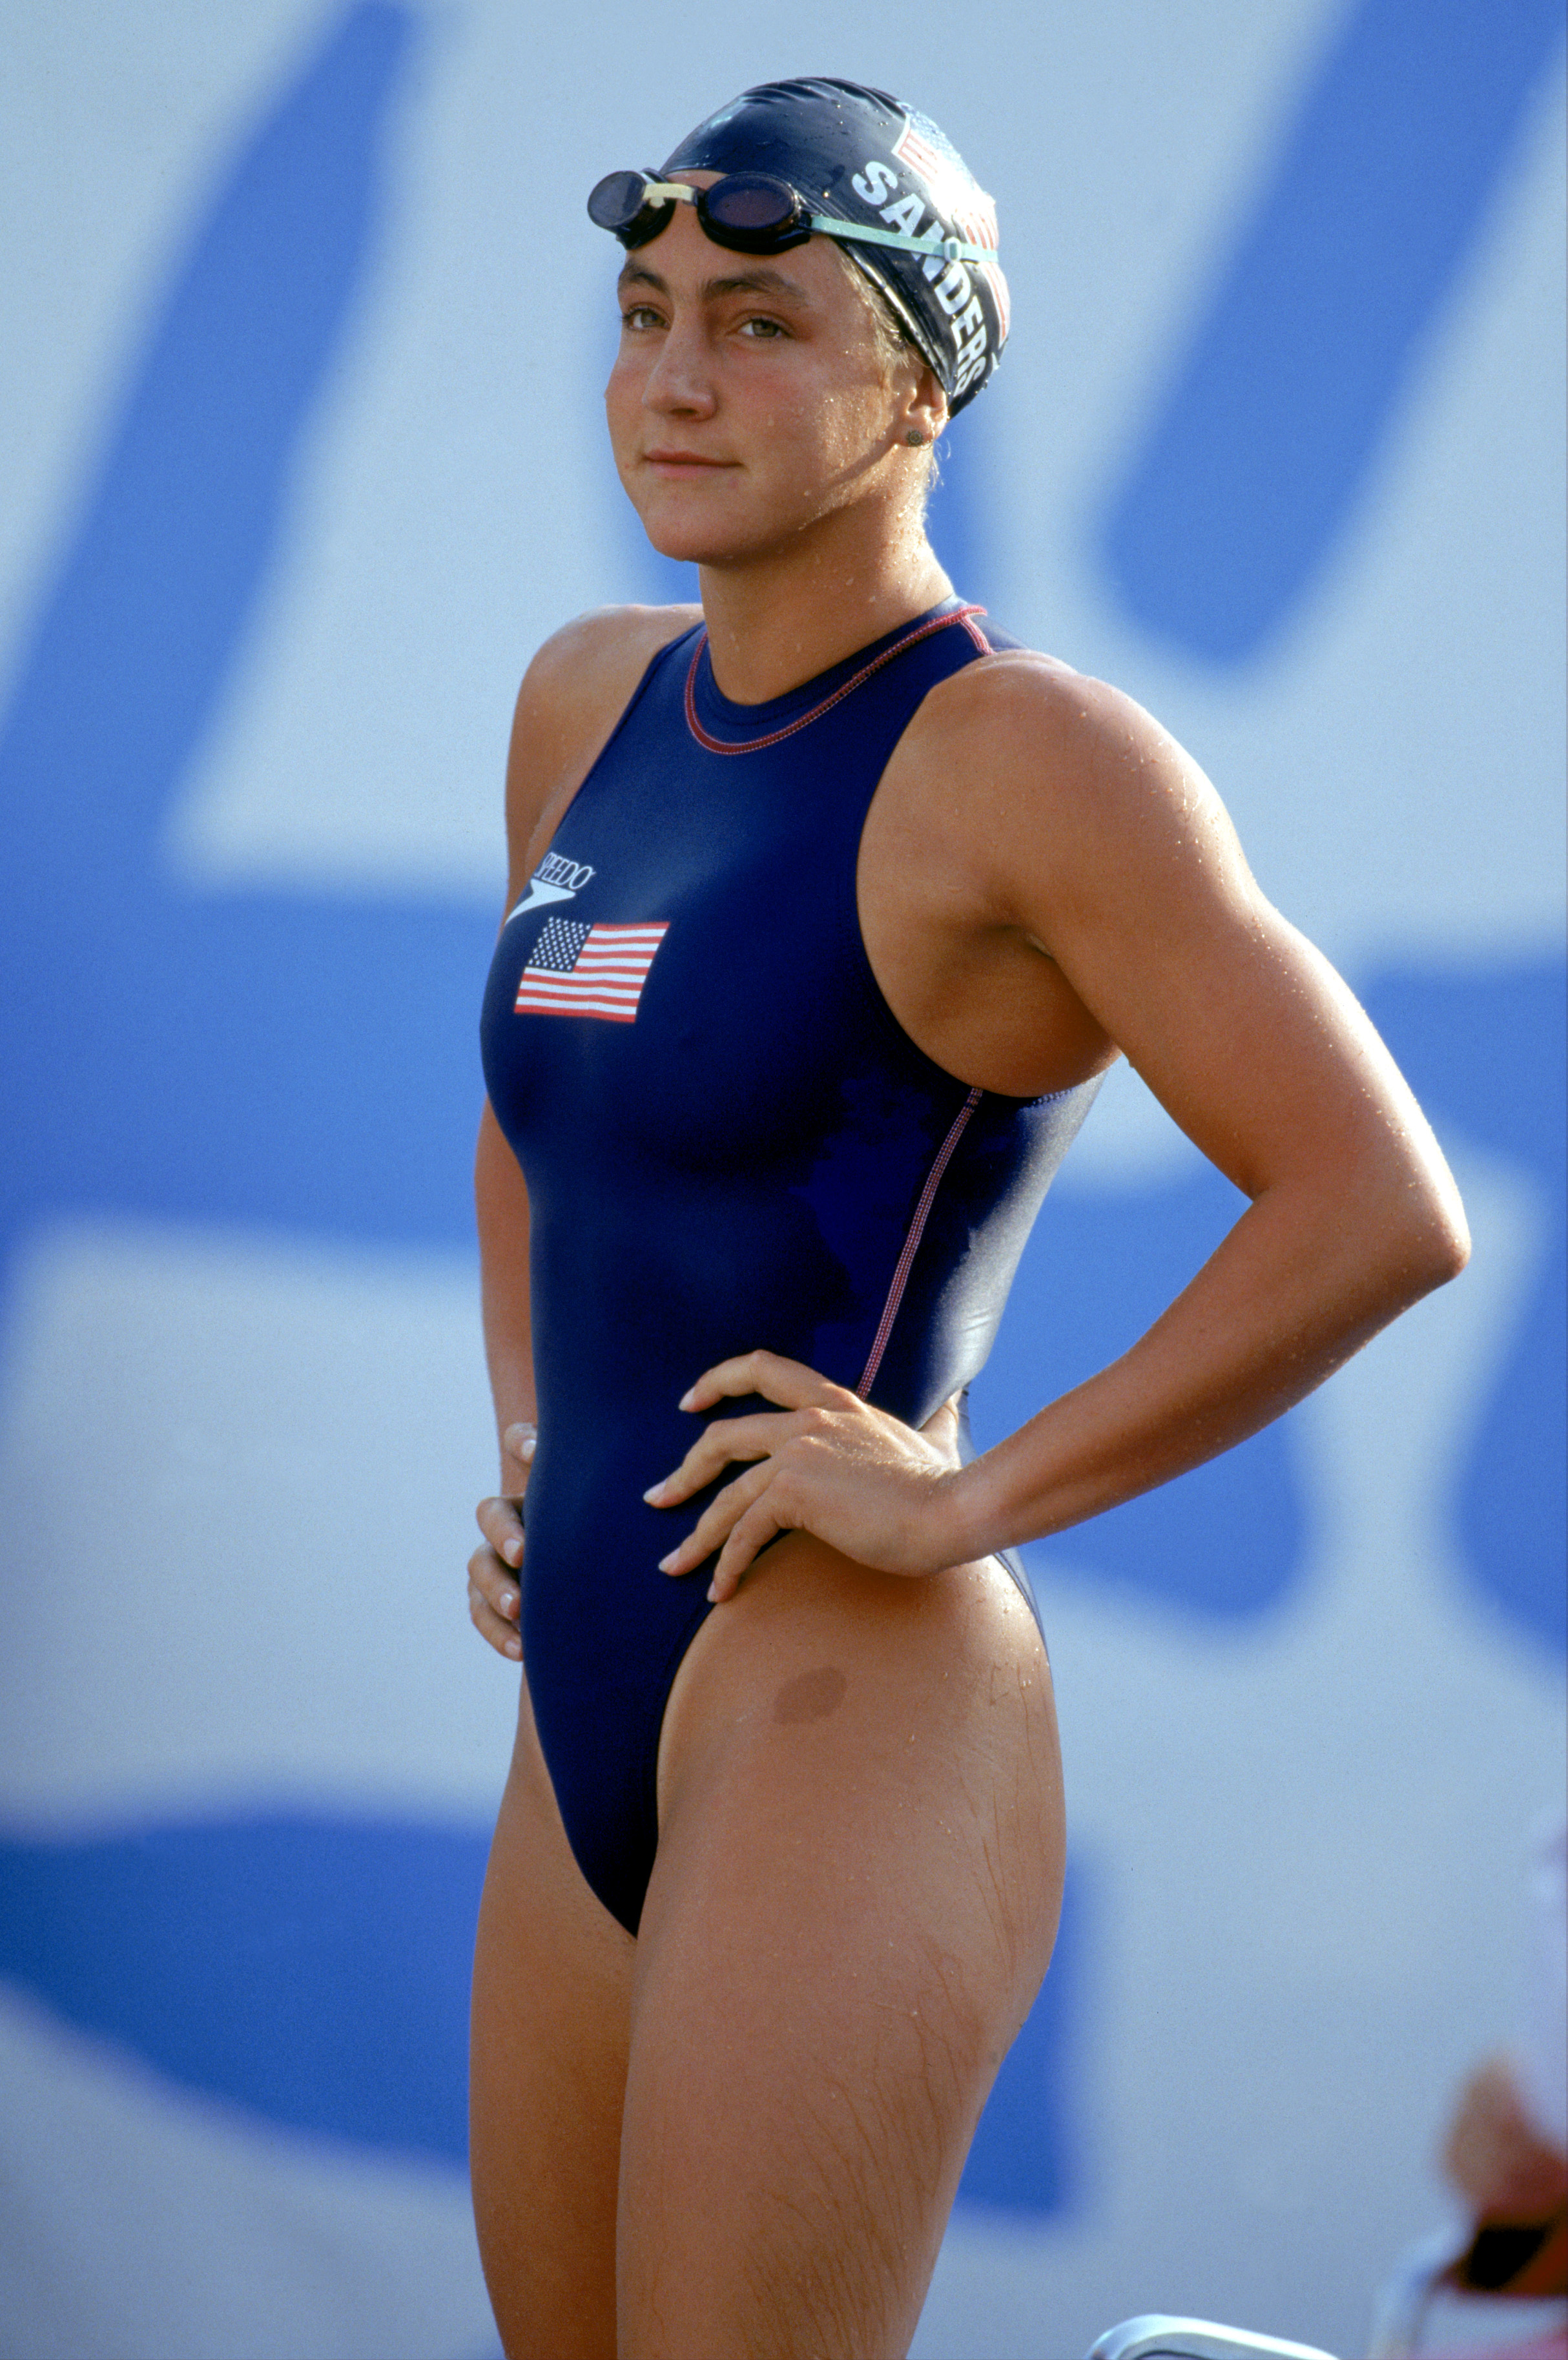 BARCELONA - 1992:  Summer Sanders of the United States look on during the 1992 Summer Olympics in Barcelona, Spain. (Photo by Simon Bruty/Getty Images)